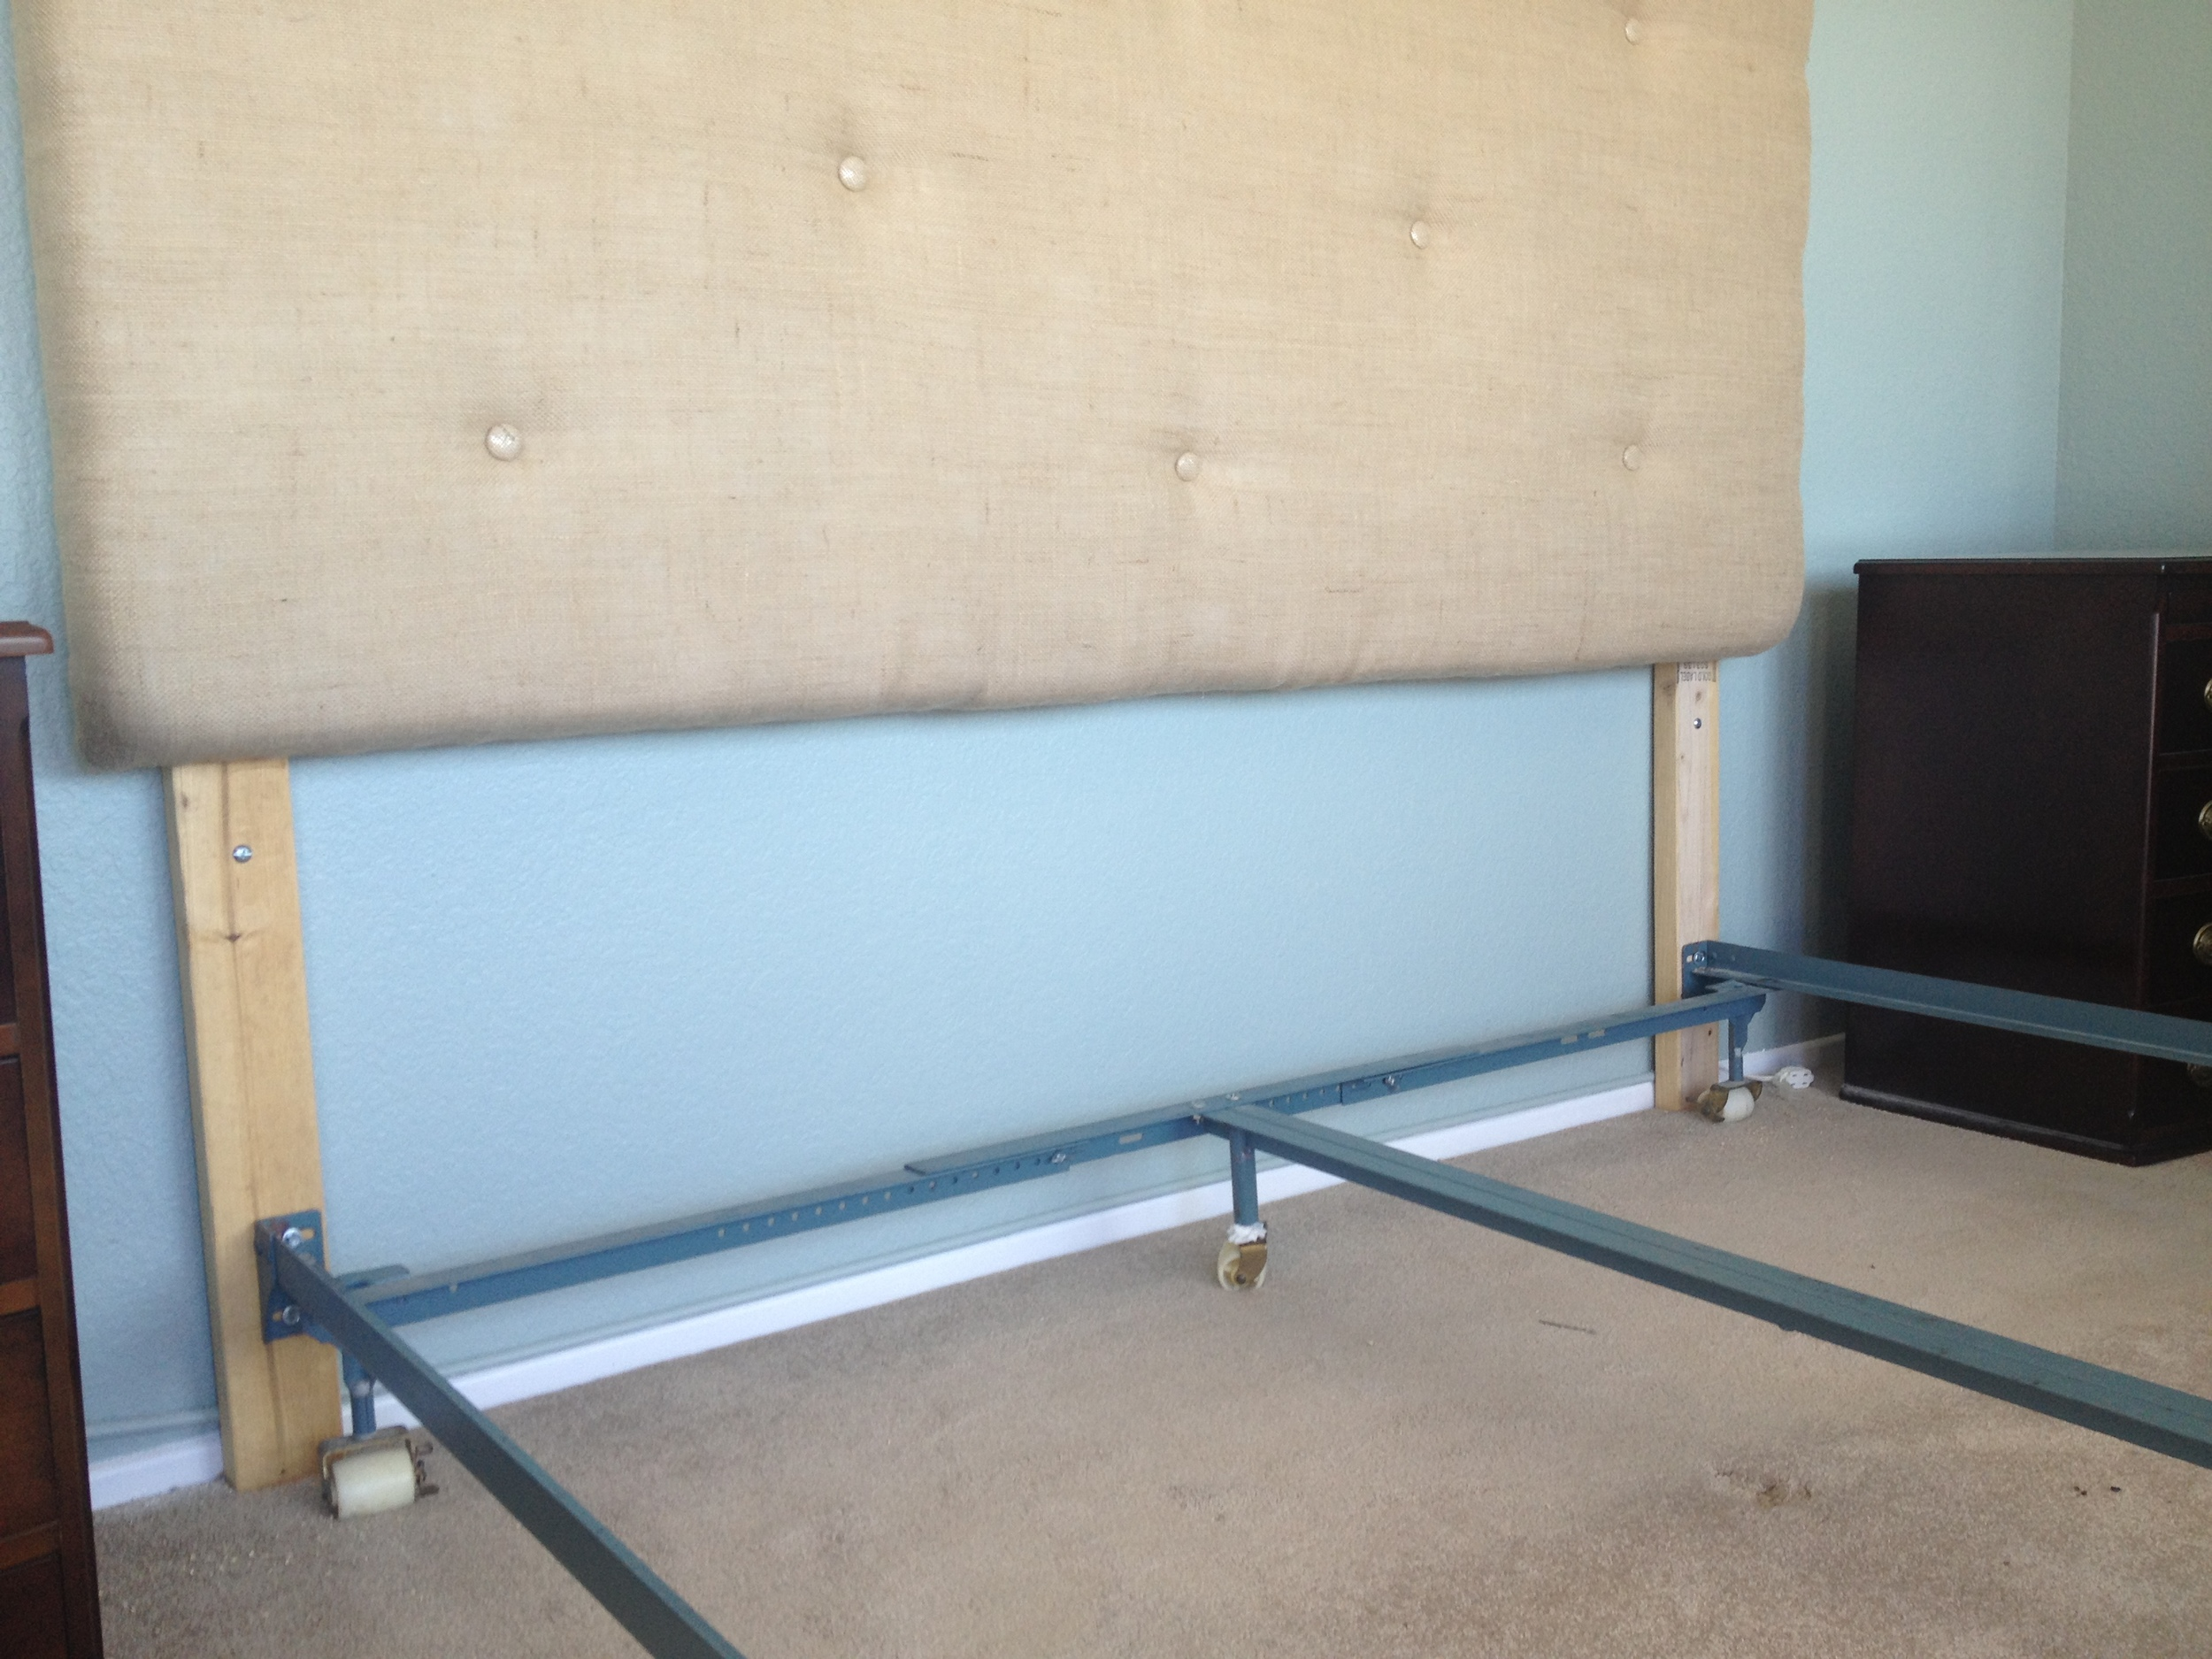 attached bed frame to headboard